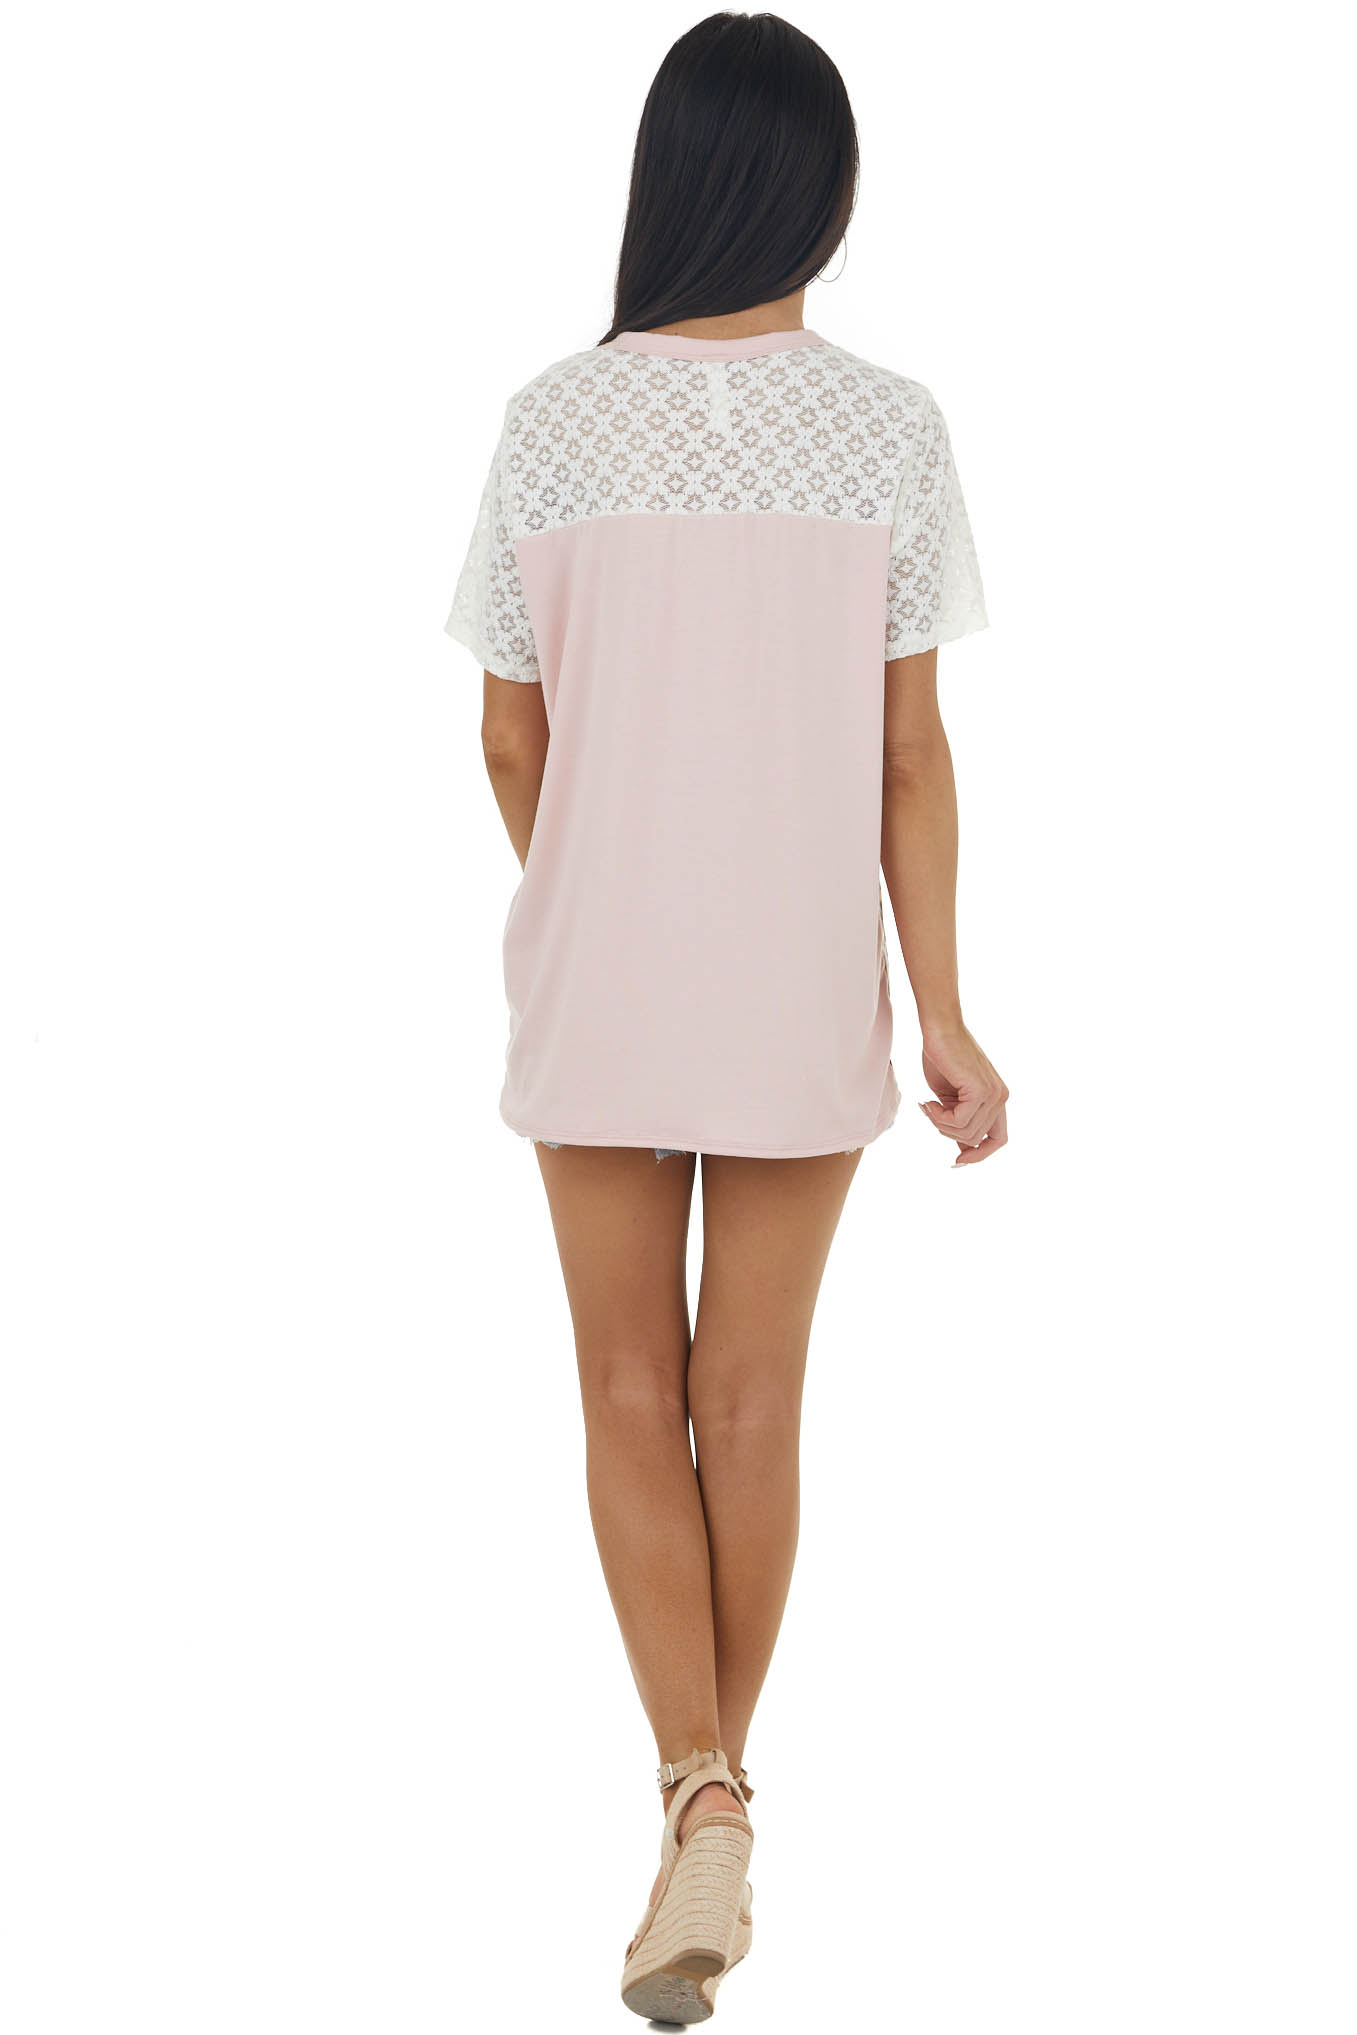 Baby Pink and Leopard Print Colorblock Top with Lace Details